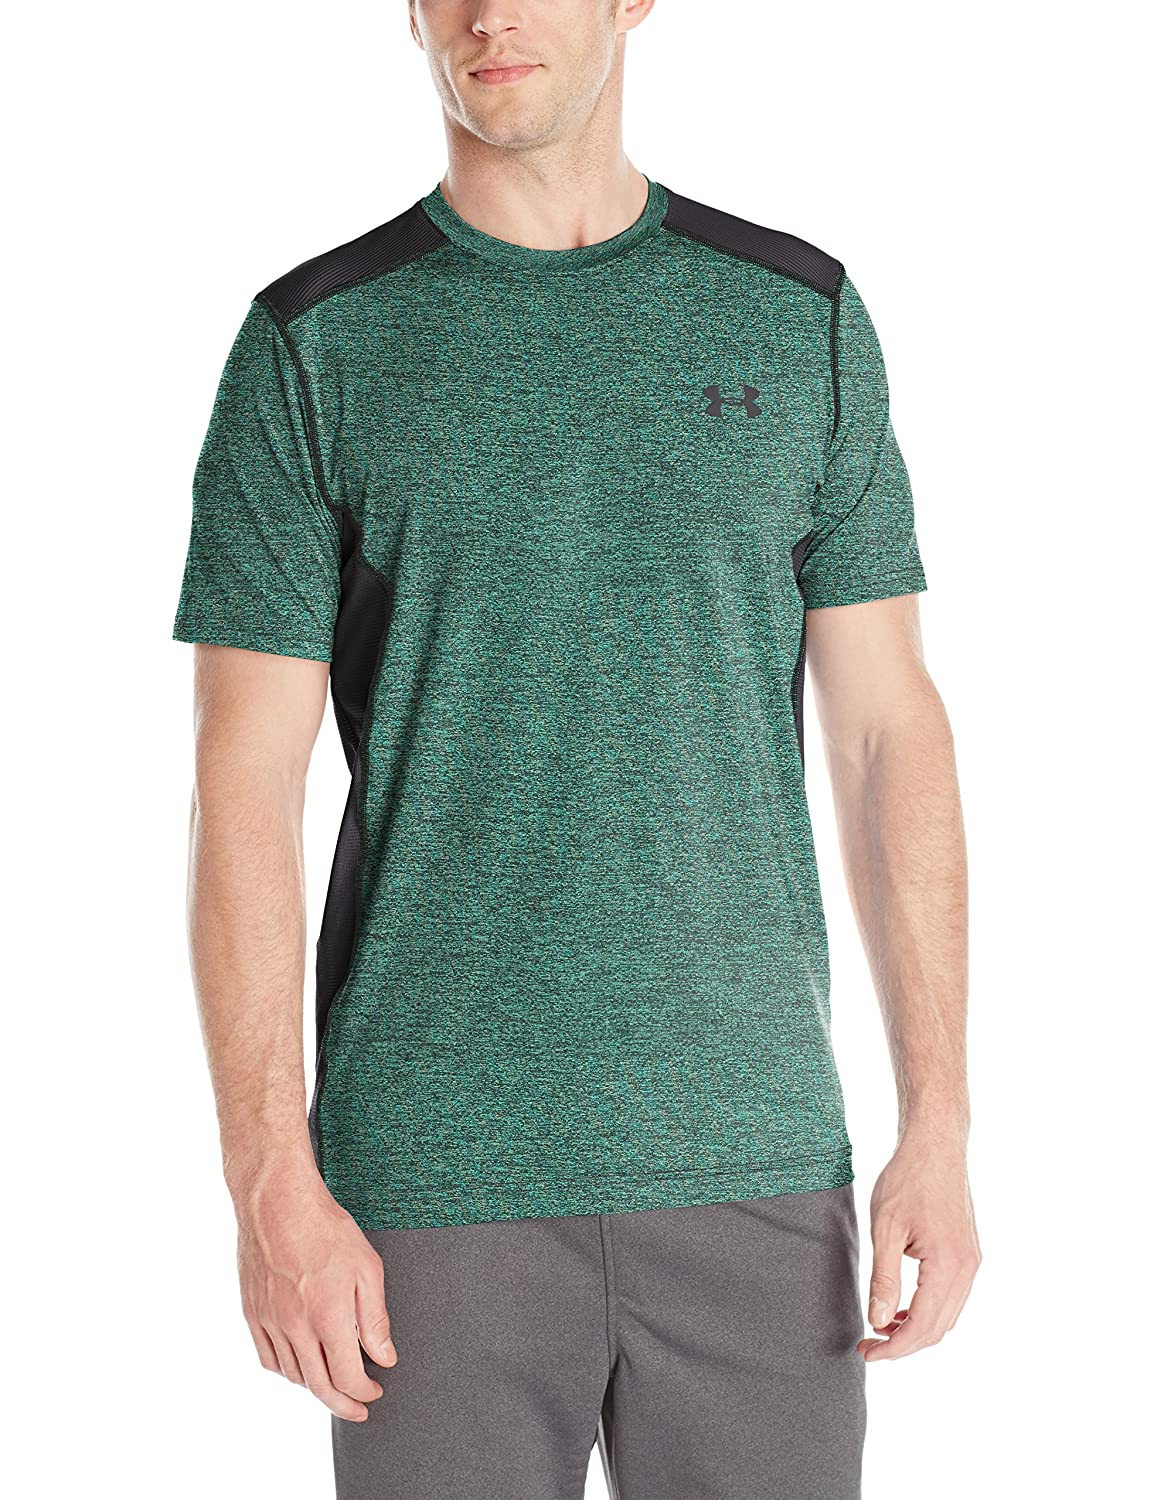 (アンダーアーマー) UNDER ARMOUR ヒットヒートギアSS(トレーニング/Tシャツ/MEN)[1257466] B016APQGSS XXXX-Large|Green Malachite/Black Green Malachite/Black XXXX-Large